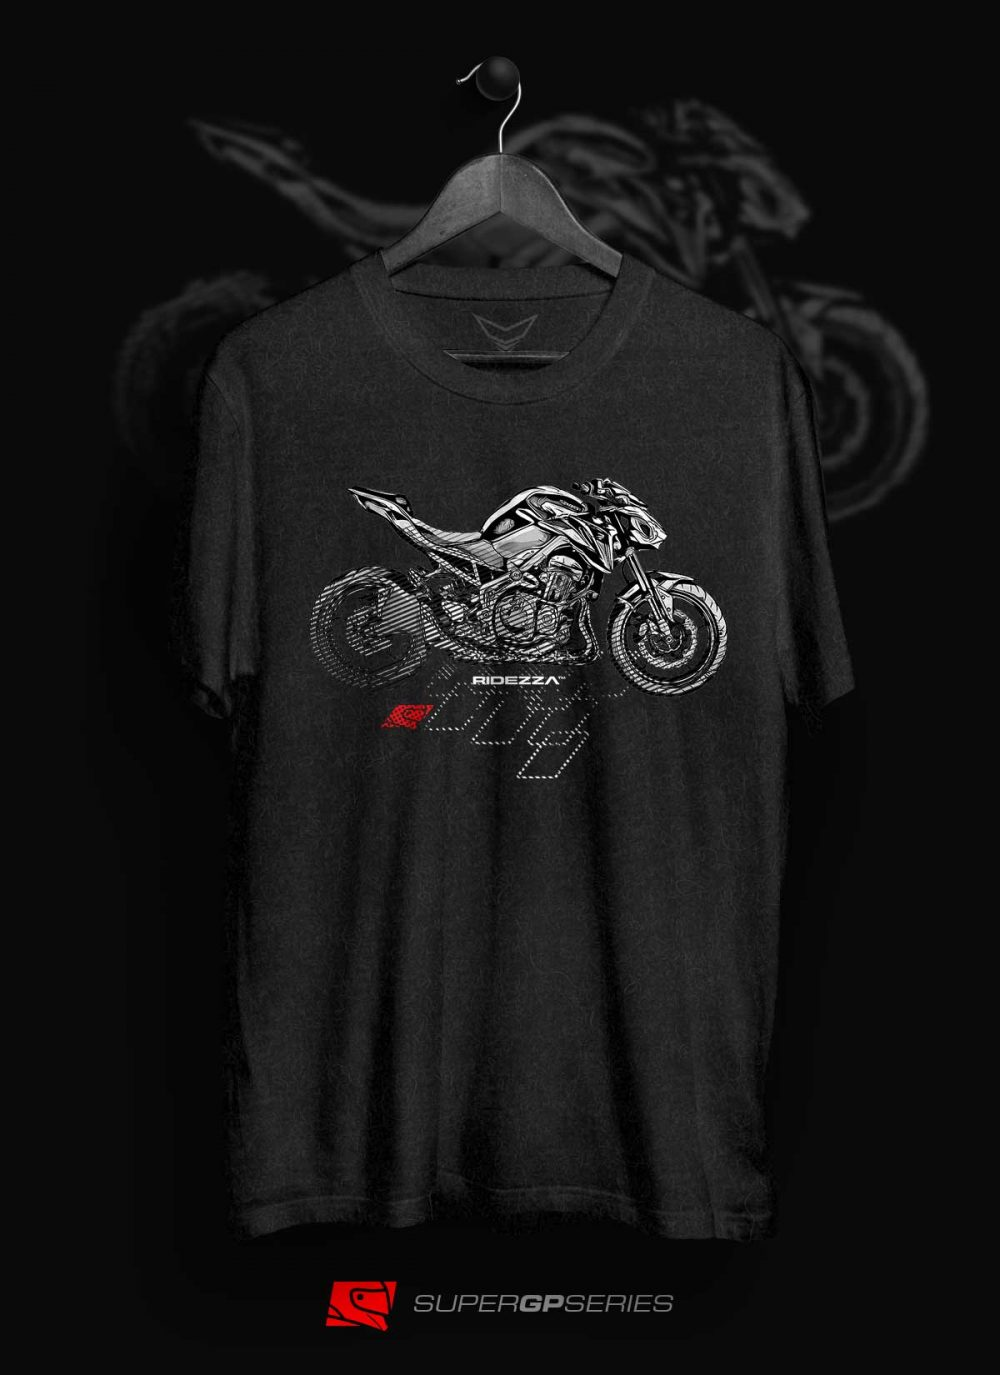 Ridezza Z900 SuperGP Series T-Shirt